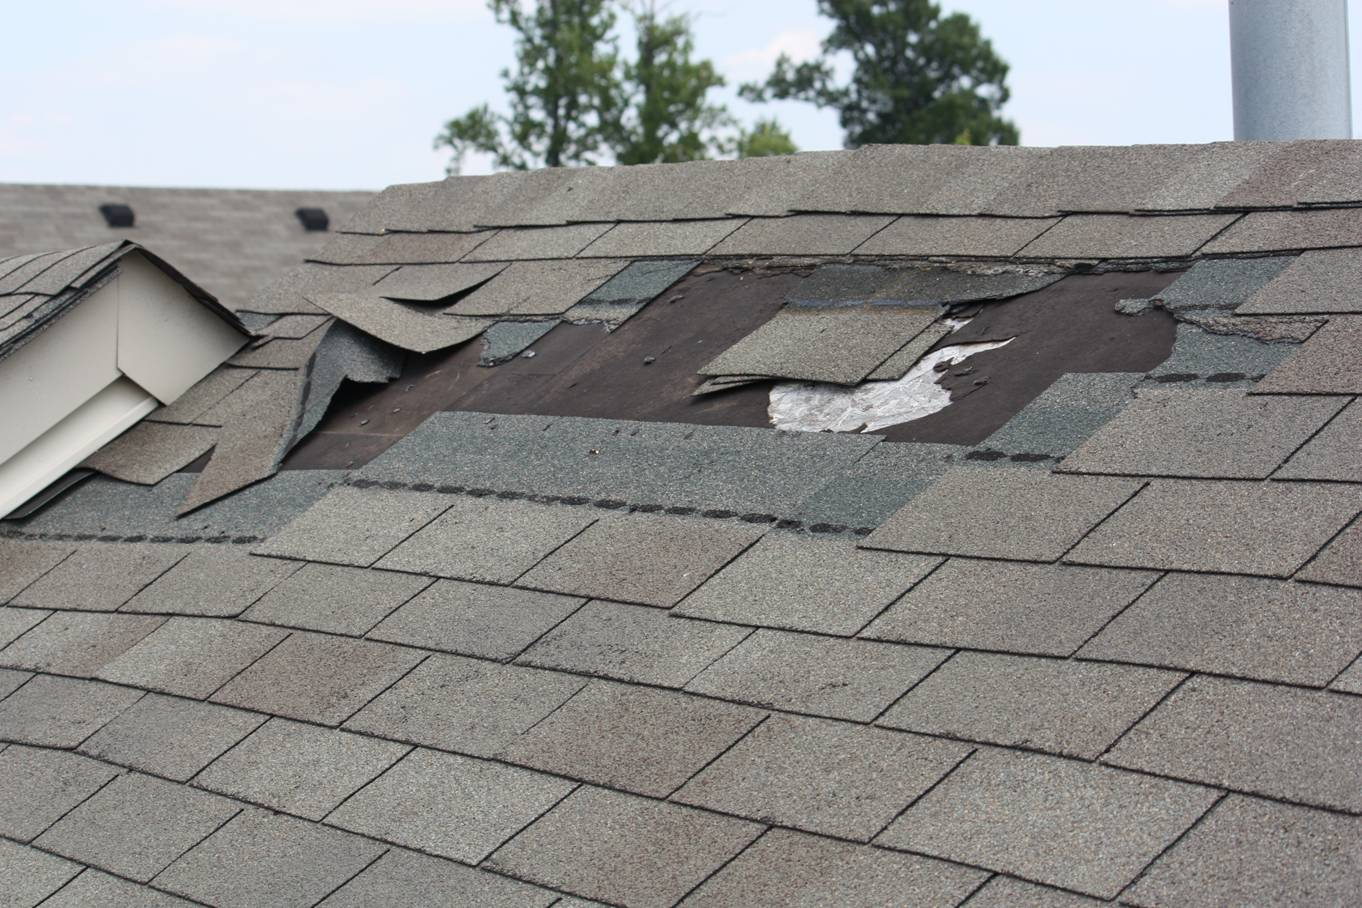 Roofing Leak Repair virginia roofing & siding company – roofing repairs